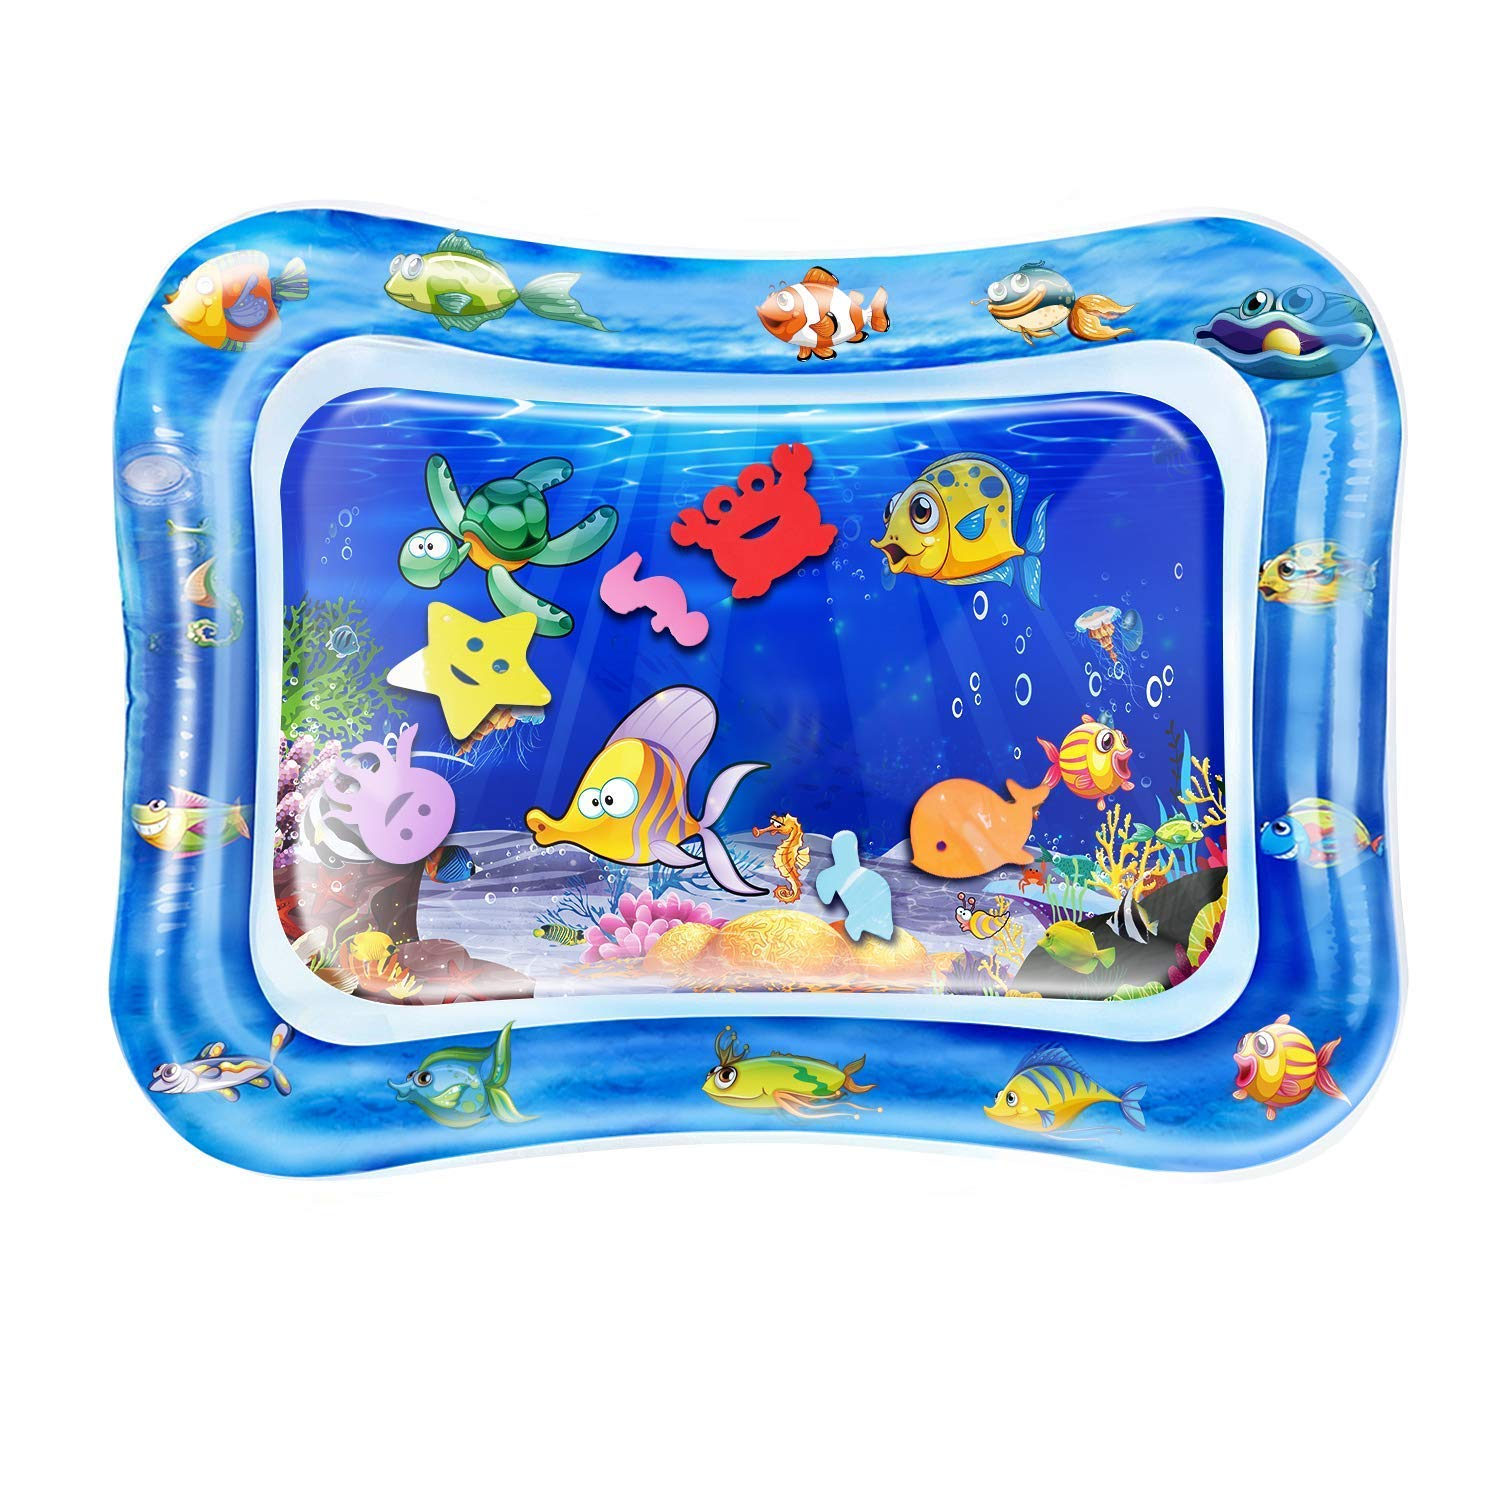 """QPAU Baby Toys 3-6 Months, Tummy Time Baby Water Mat, Infant Toy Inflatable Activity Center, Baby Toys 6 to 12 Months, 28""""x20"""""""